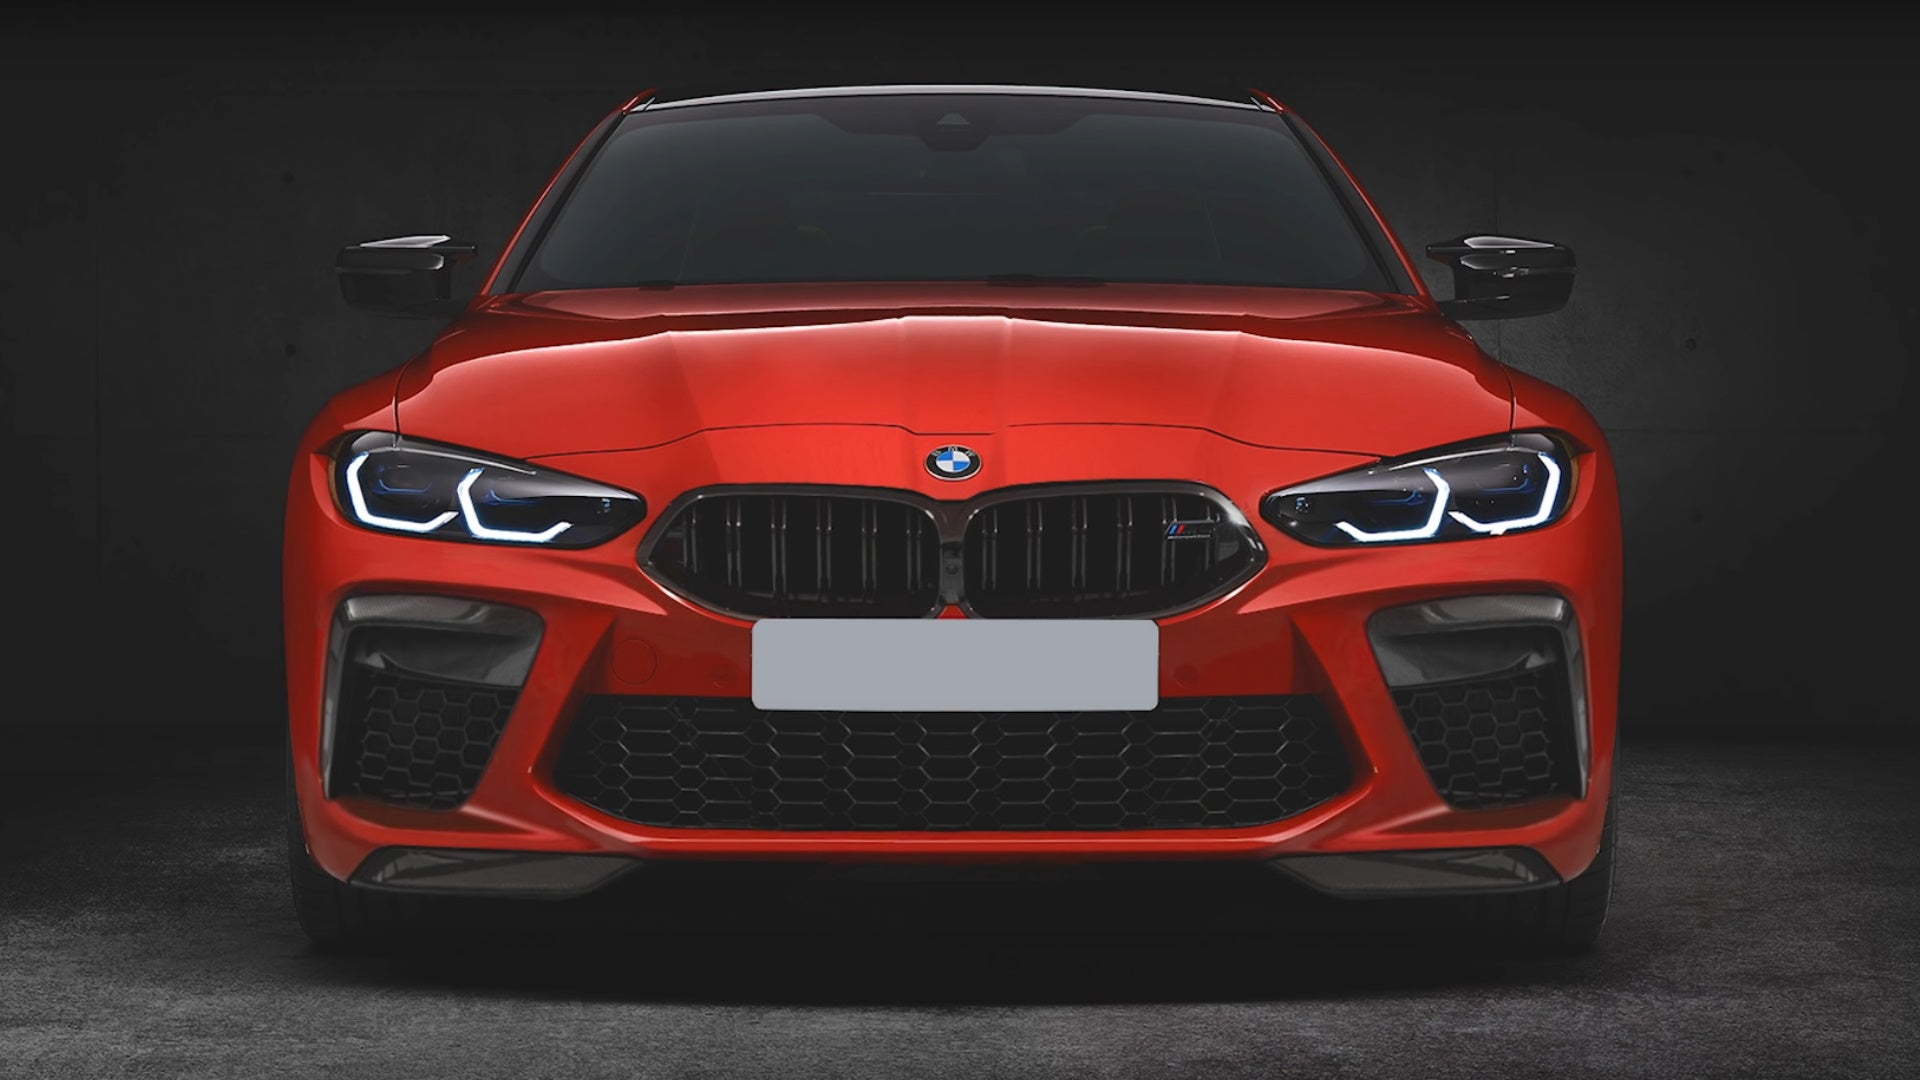 Want A New 2021 BMW M3/M4 But Hate The Grille? Here's The Fix!